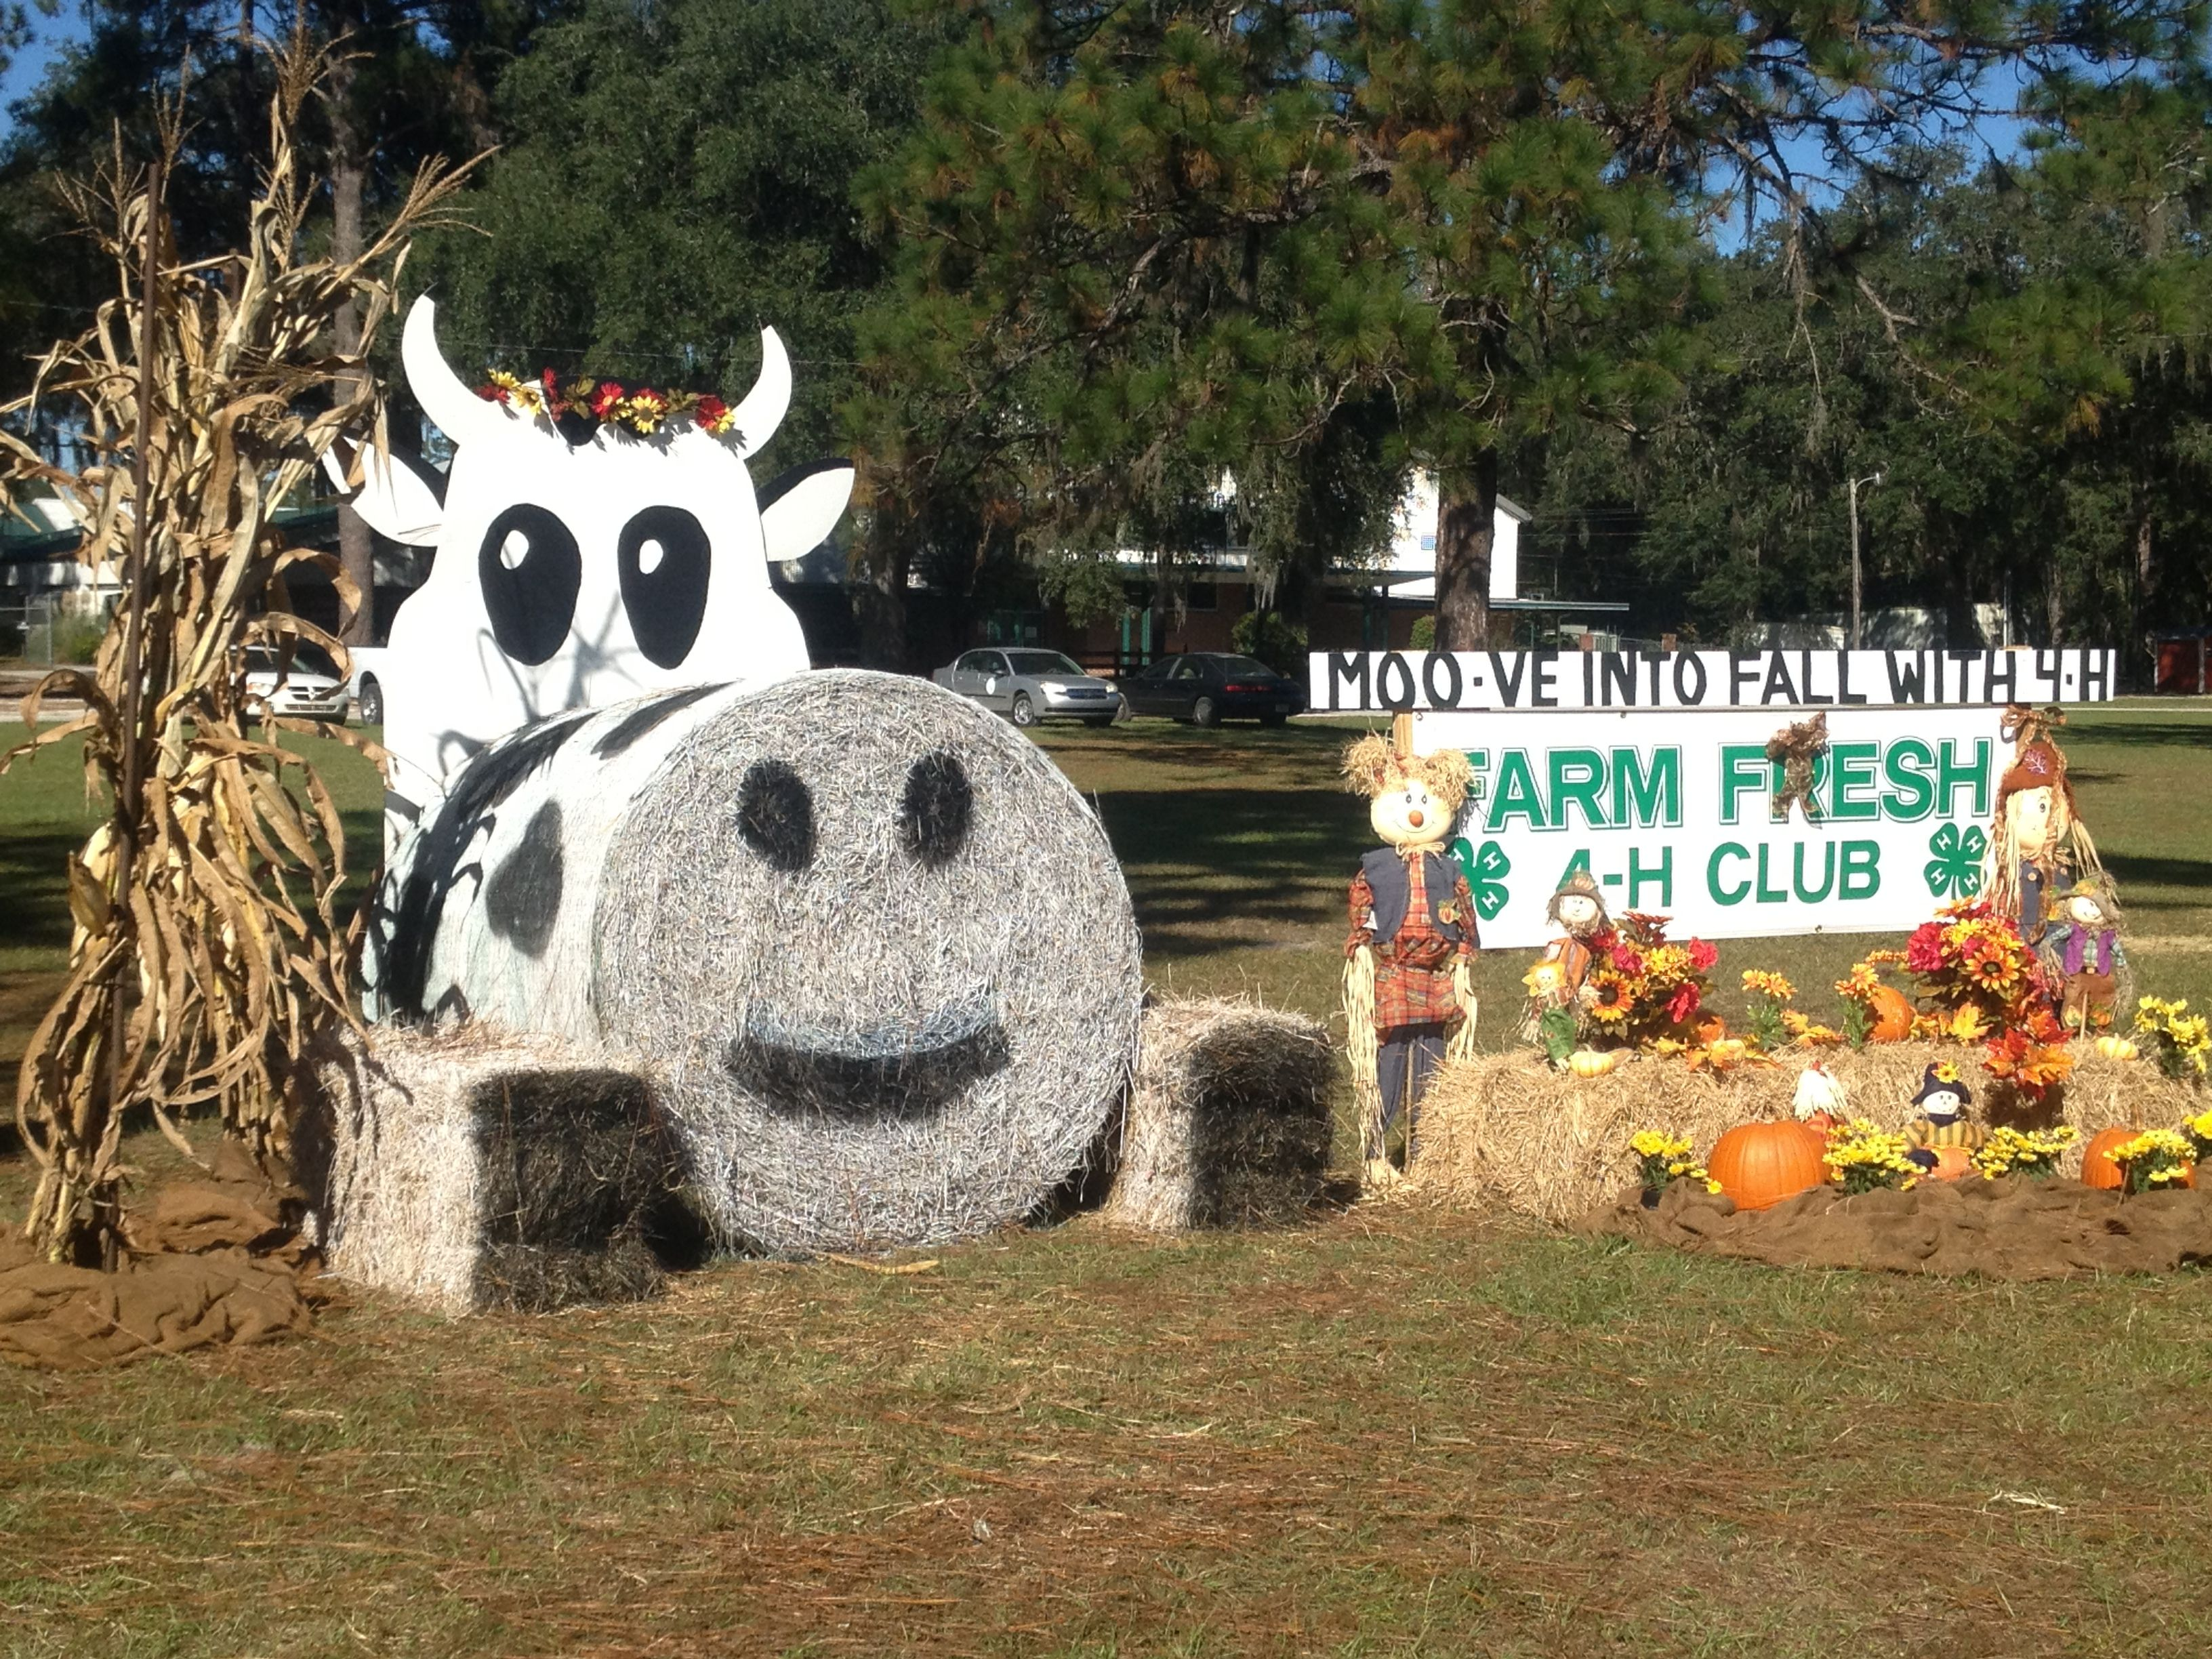 Hay Decoration Suwannee County Florida 4h Hay Bale Decorations Suwannee